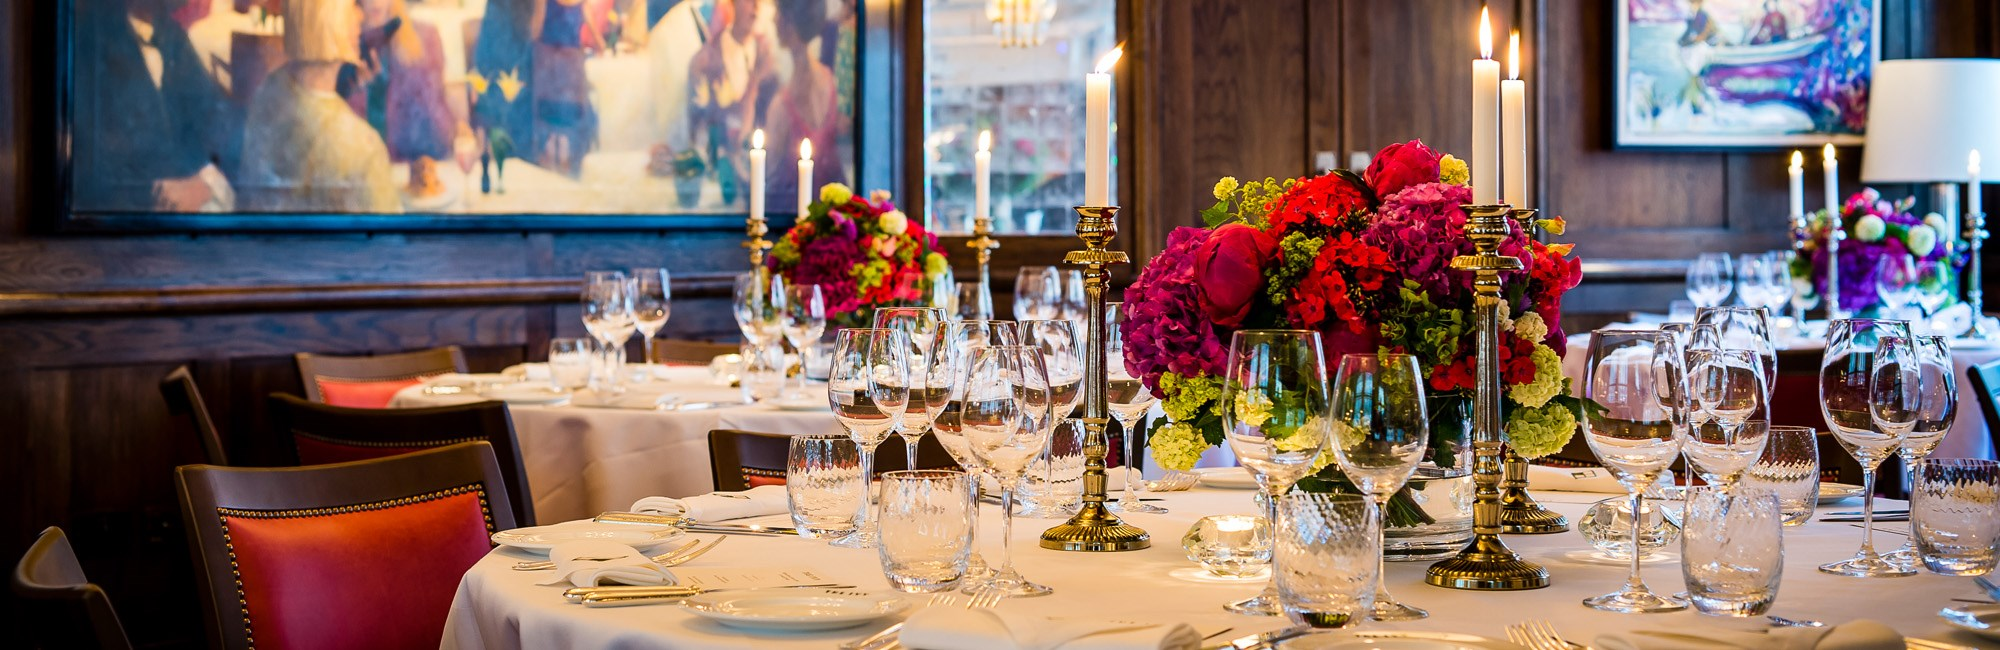 The private dining room at The Ivy in Covent Garden is available for Large Group Dining and Private Hire